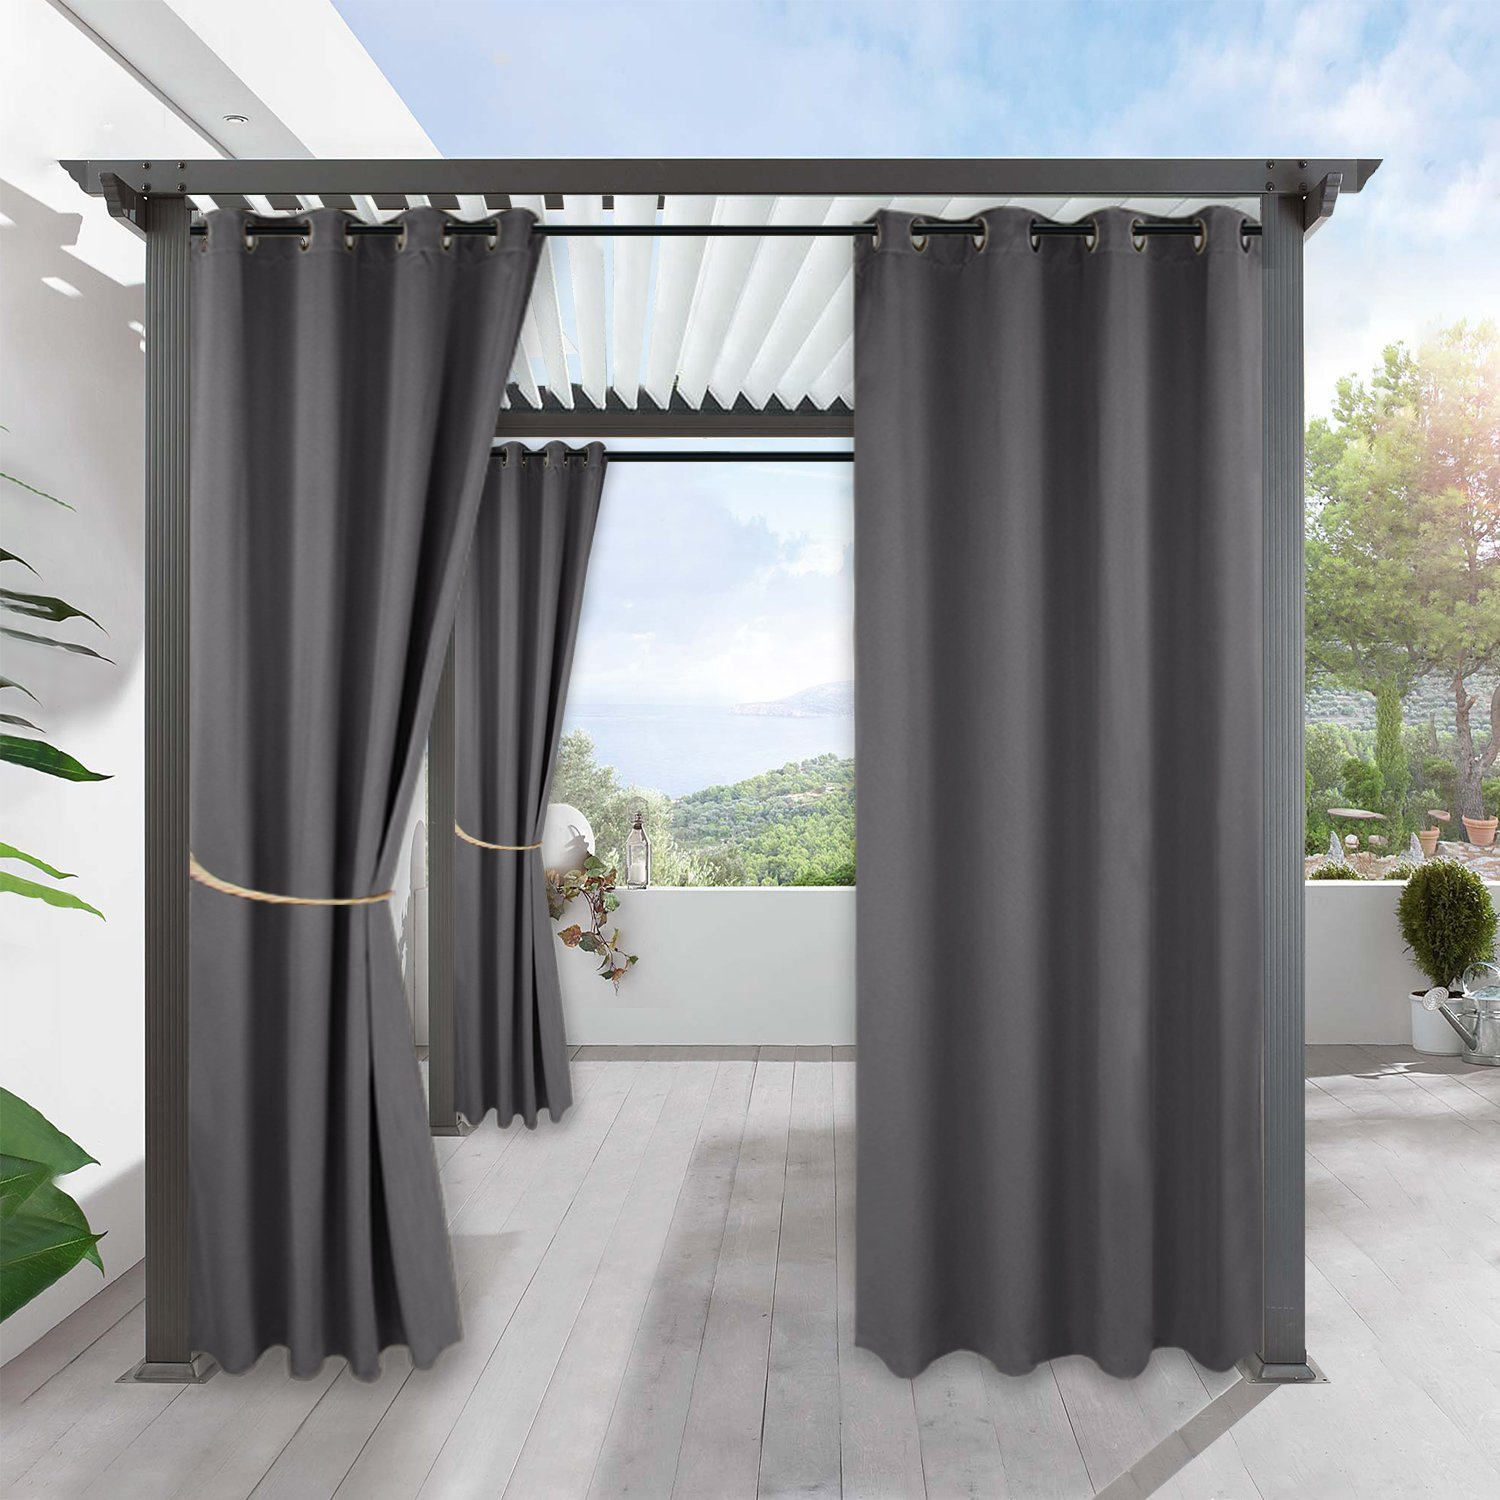 Beautiful Privacy Curtains for Patio